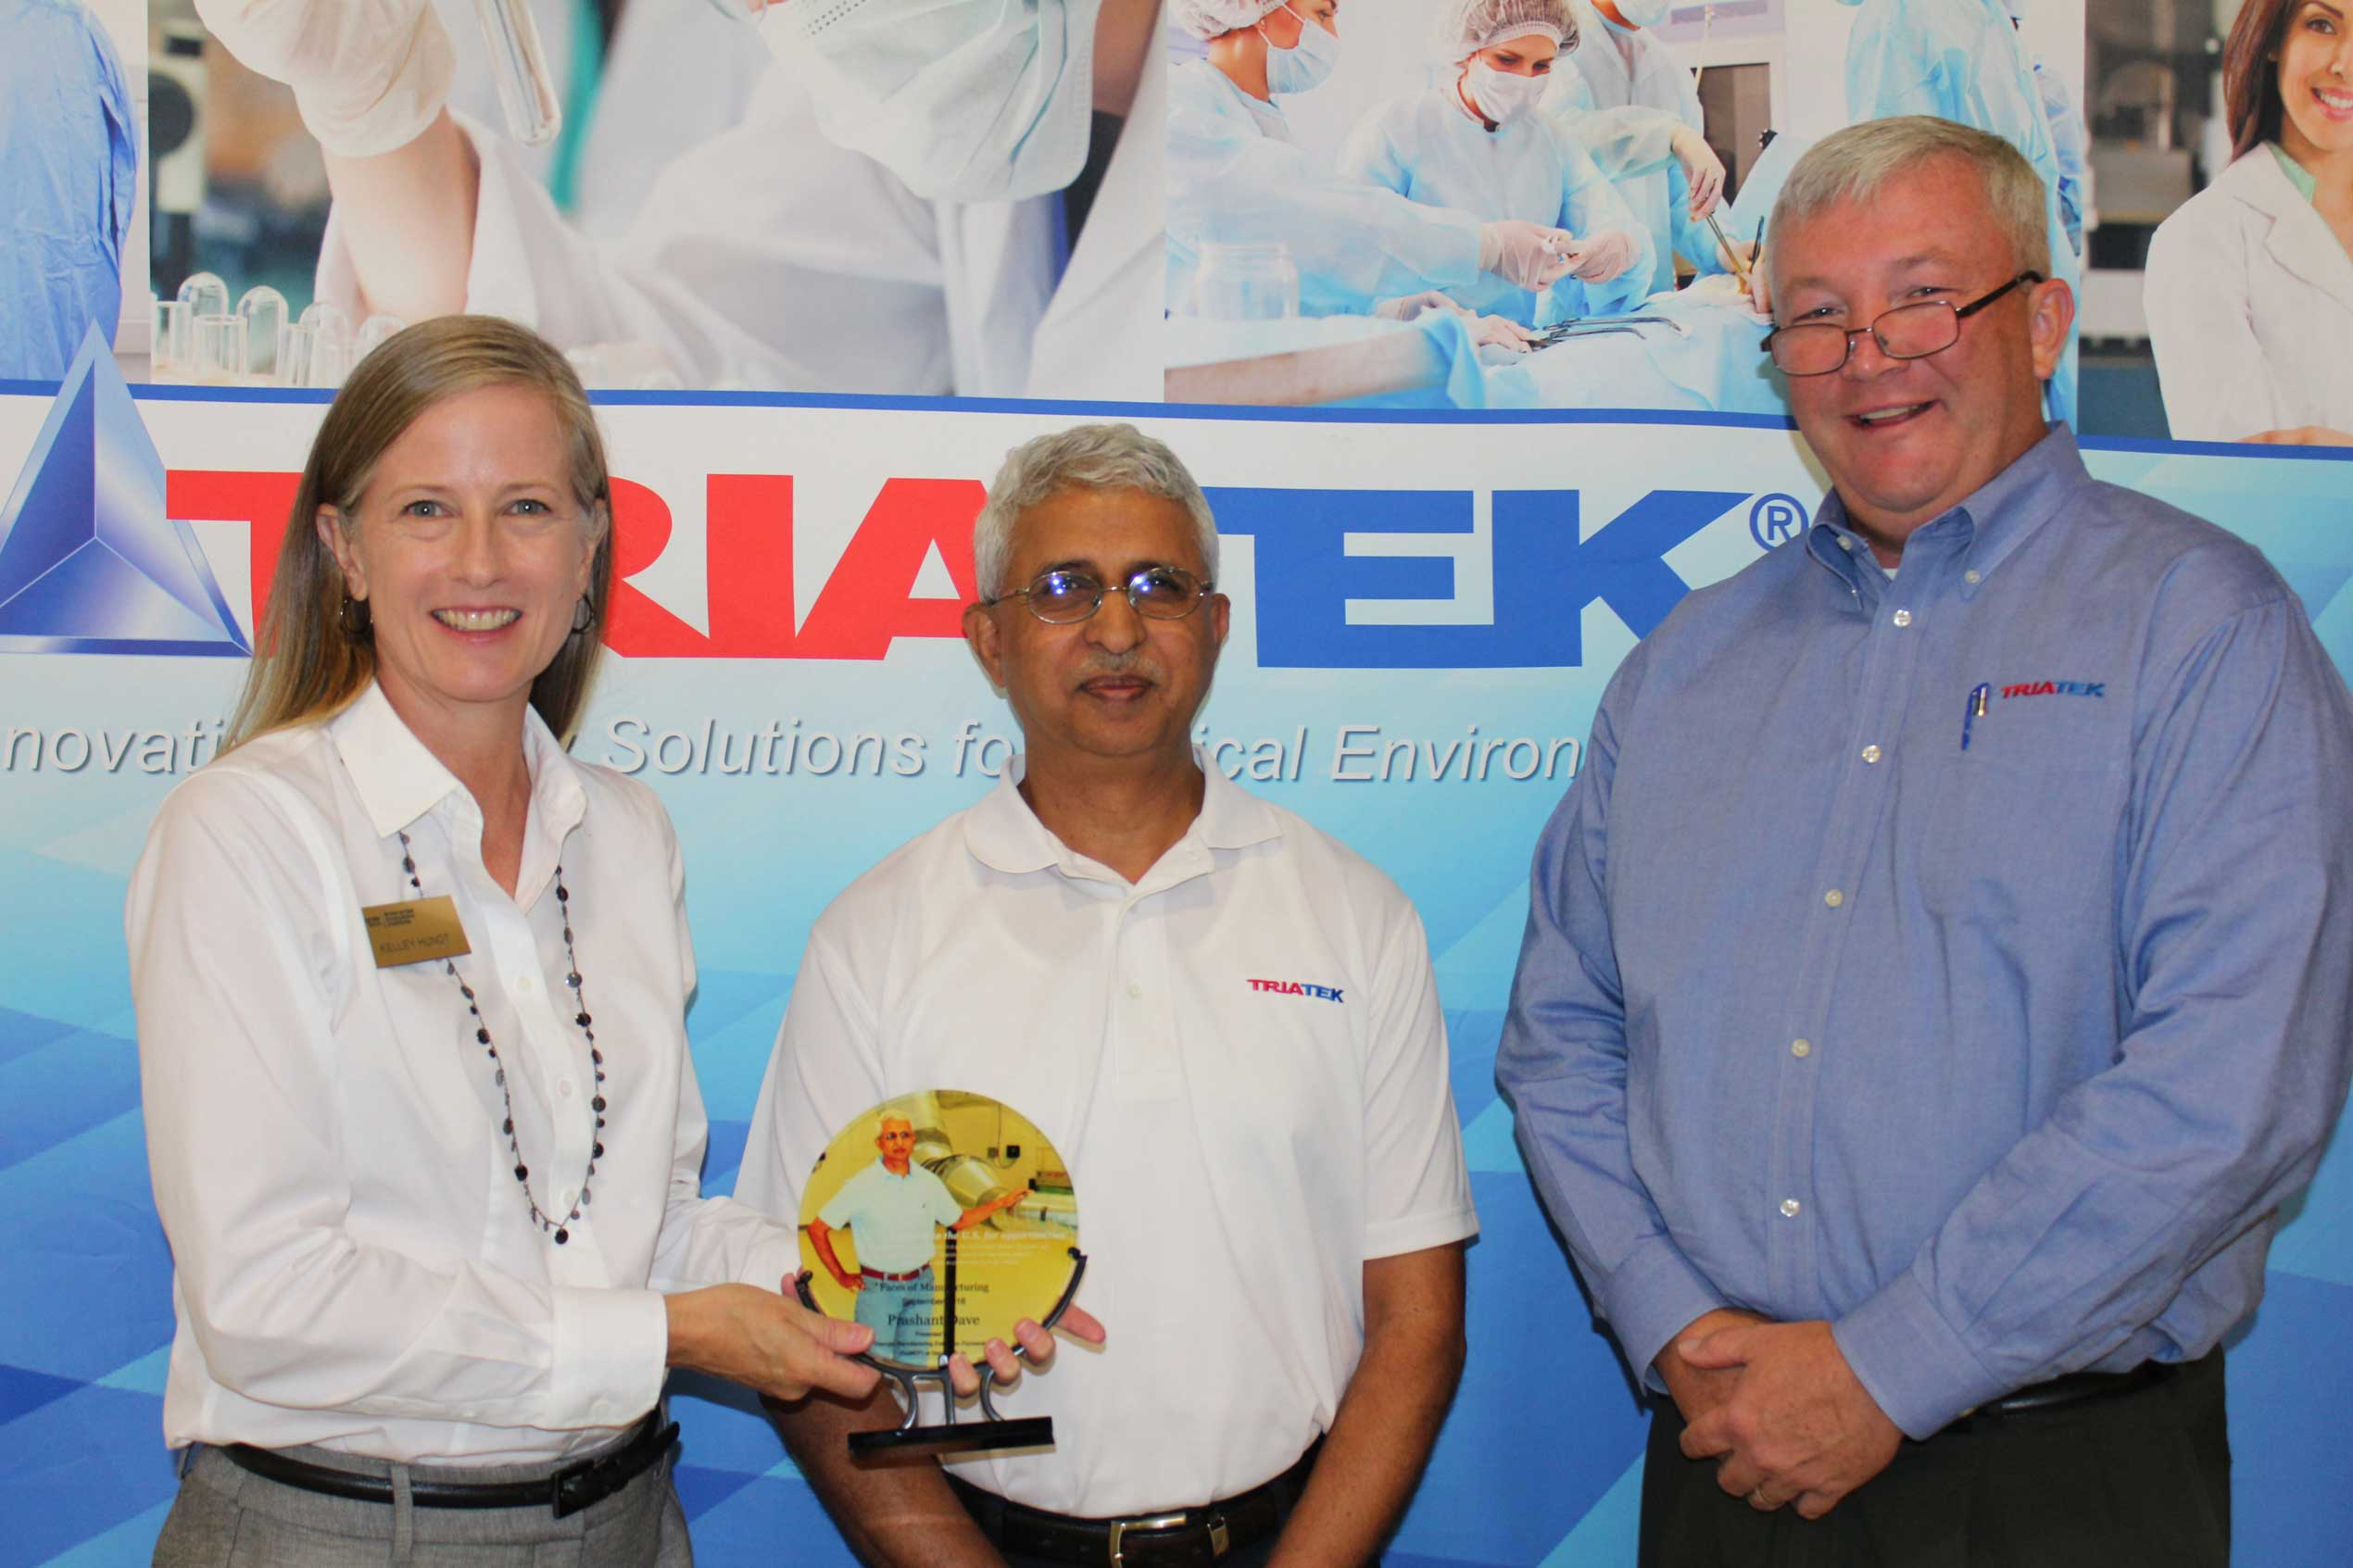 Kelley Hundt (left) is pictured with Prashant Dave and Triatek's CEO Jim Hall as she presents the award